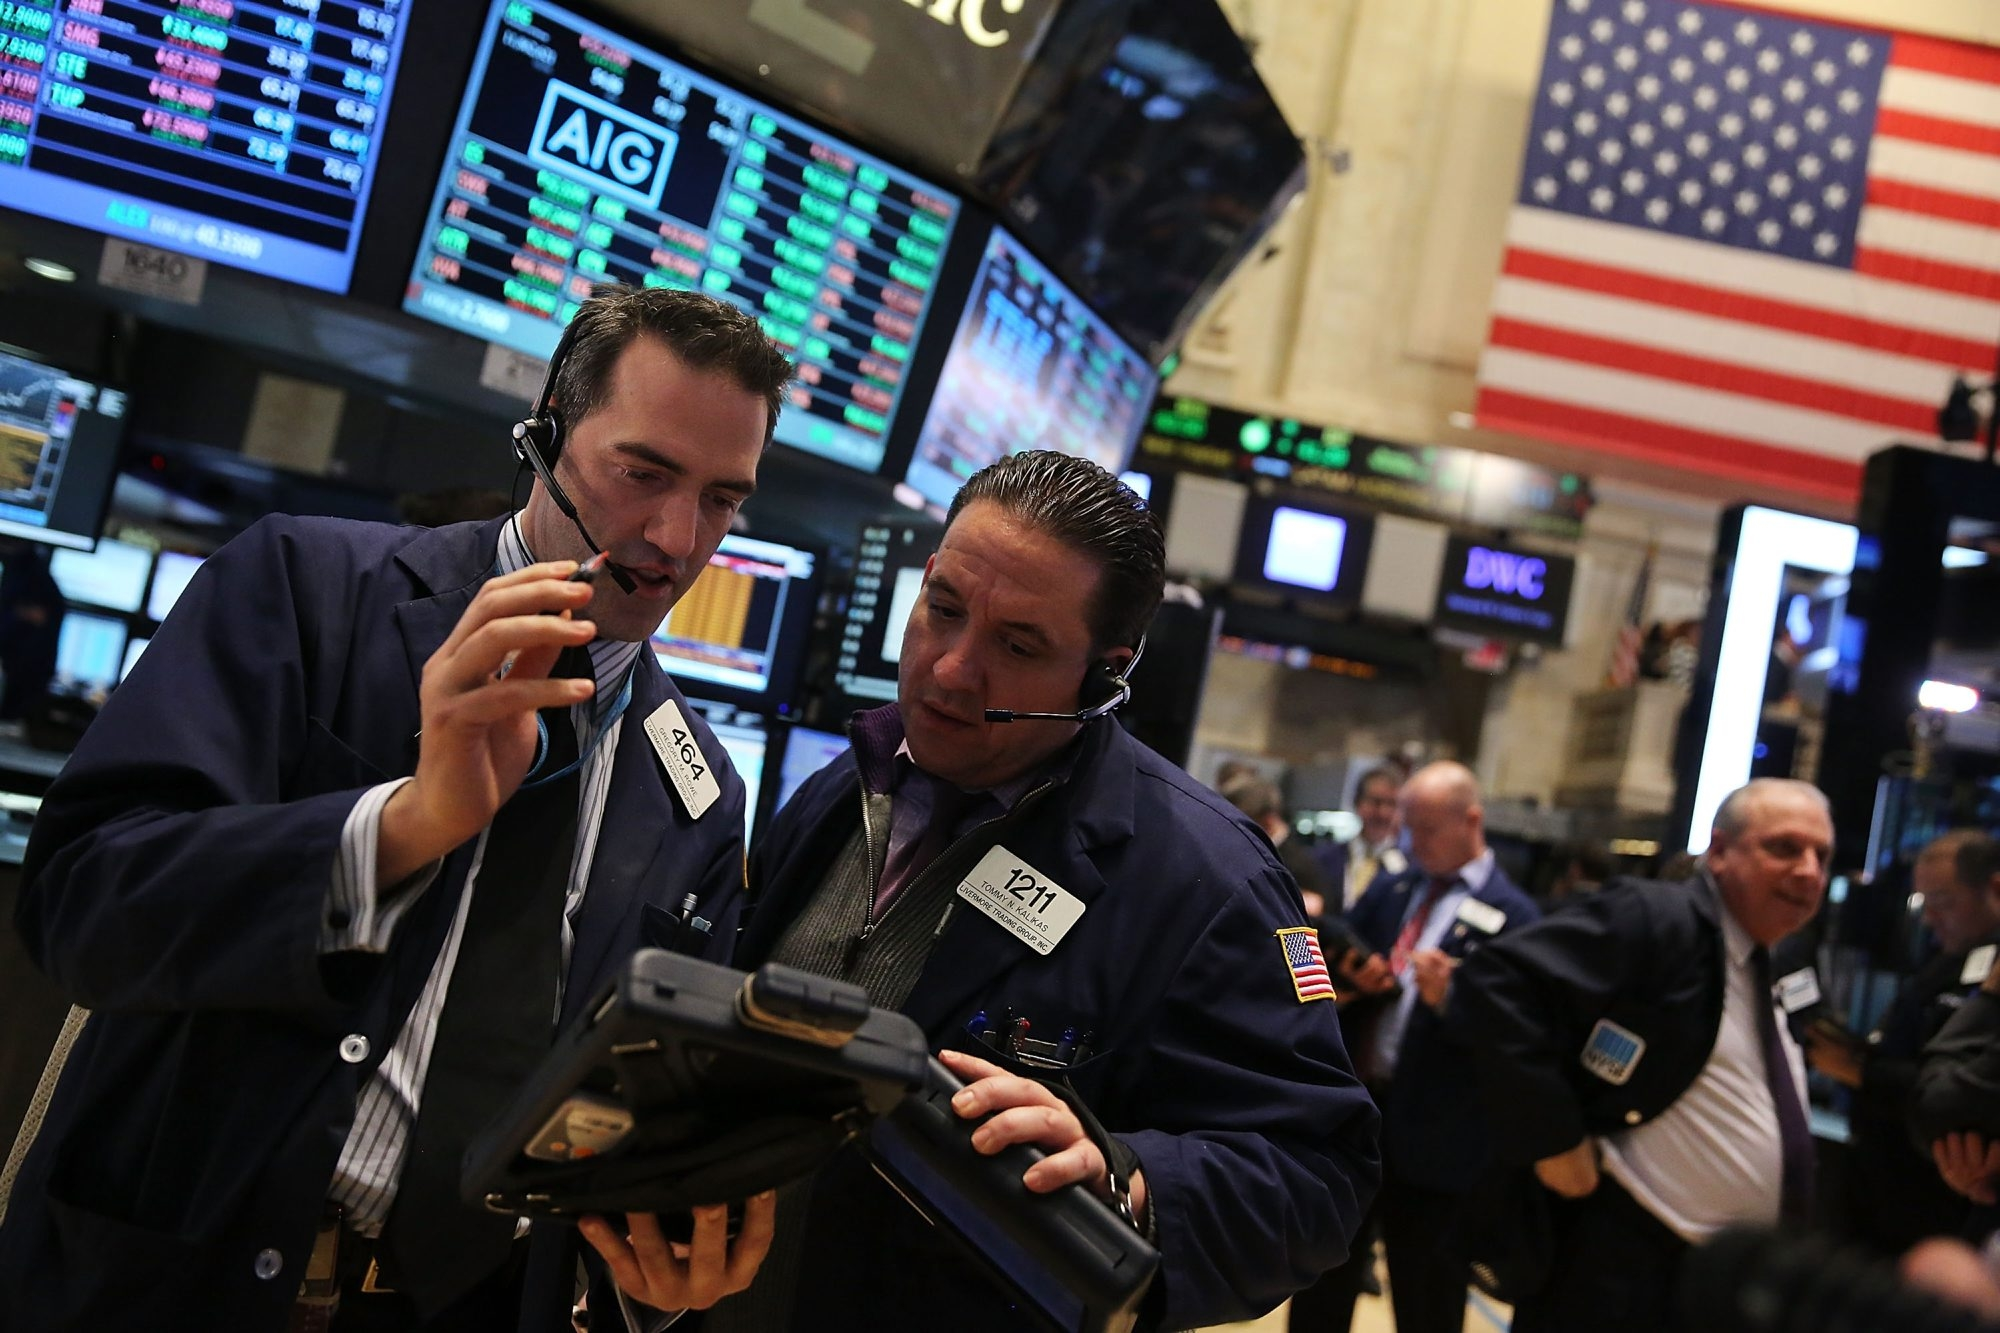 Traders work on the floor of the New York Stock Exchange in New York City. Stocks remained little change and near all-time highs Wednesday as declines in Hewlett-Packard and Apple offset gains among retailers.